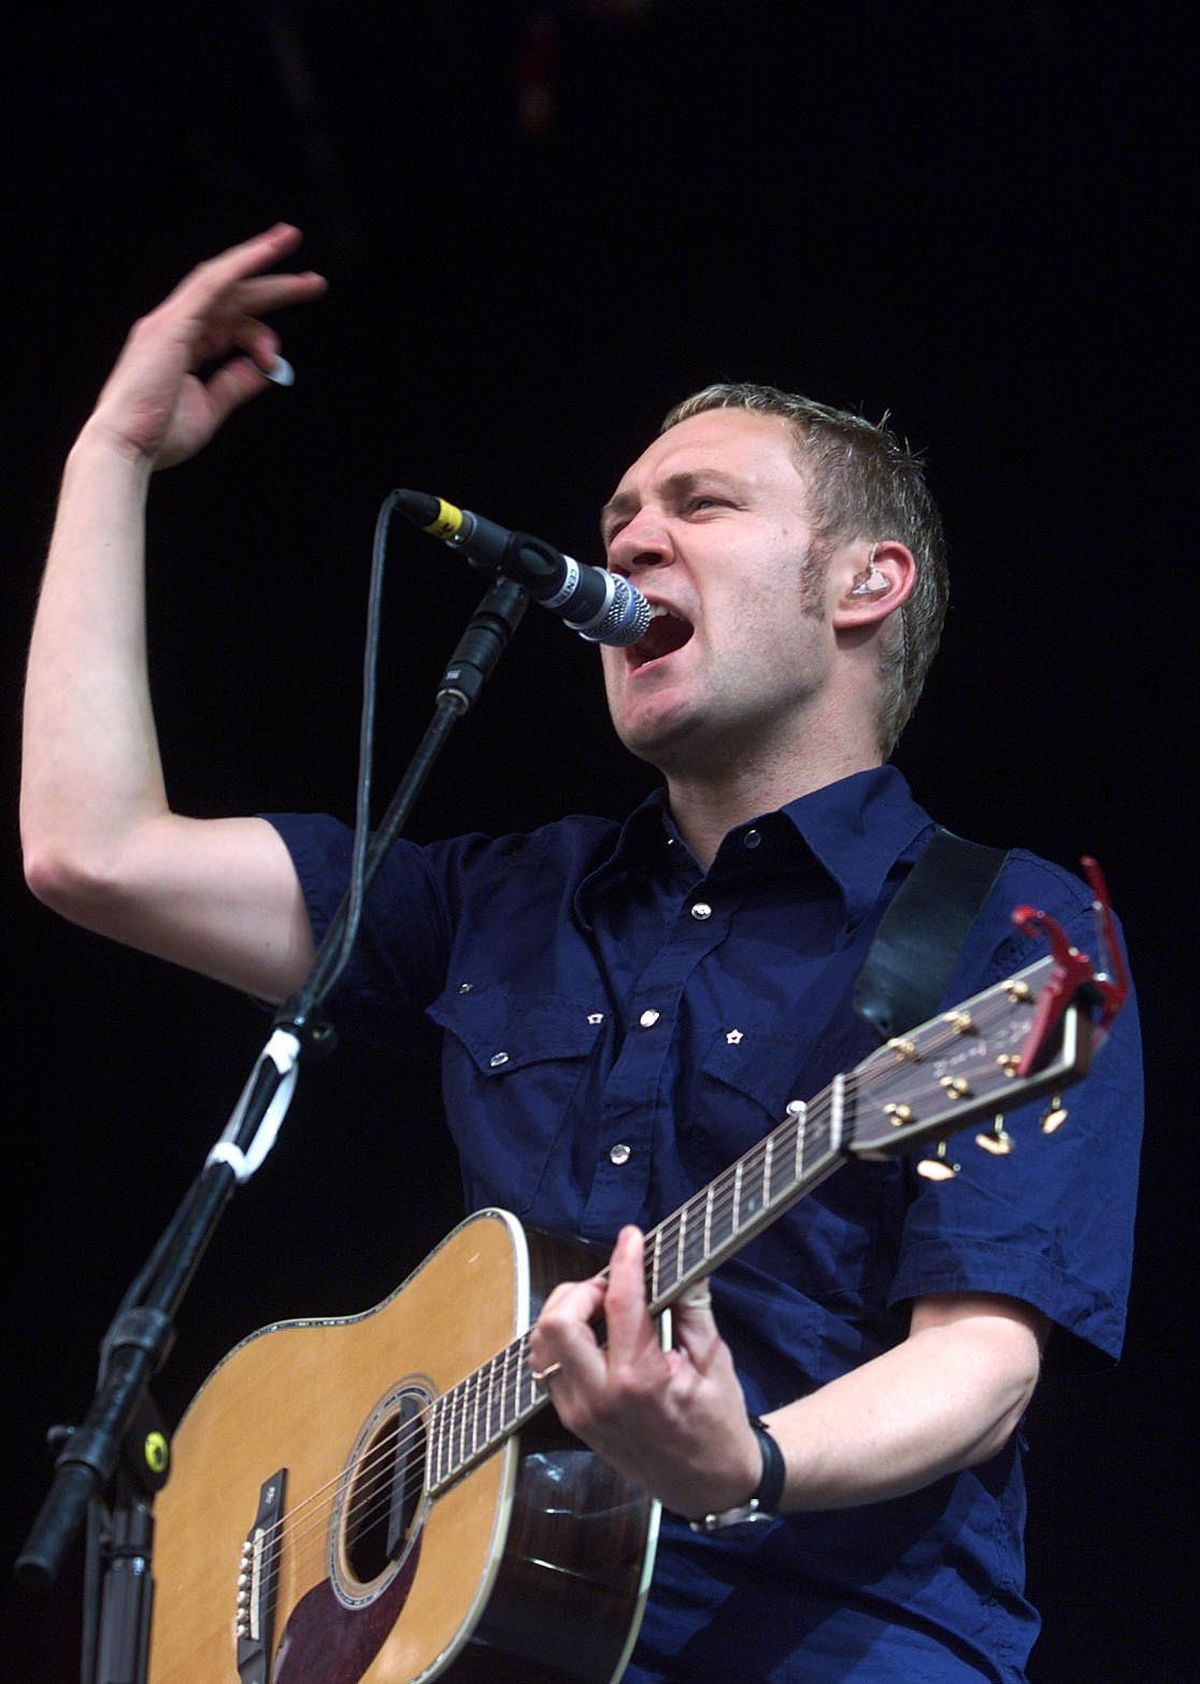 David Gray performs at V Festival in Weston Park, on the Staffordshire/Shropshire border, in 2001